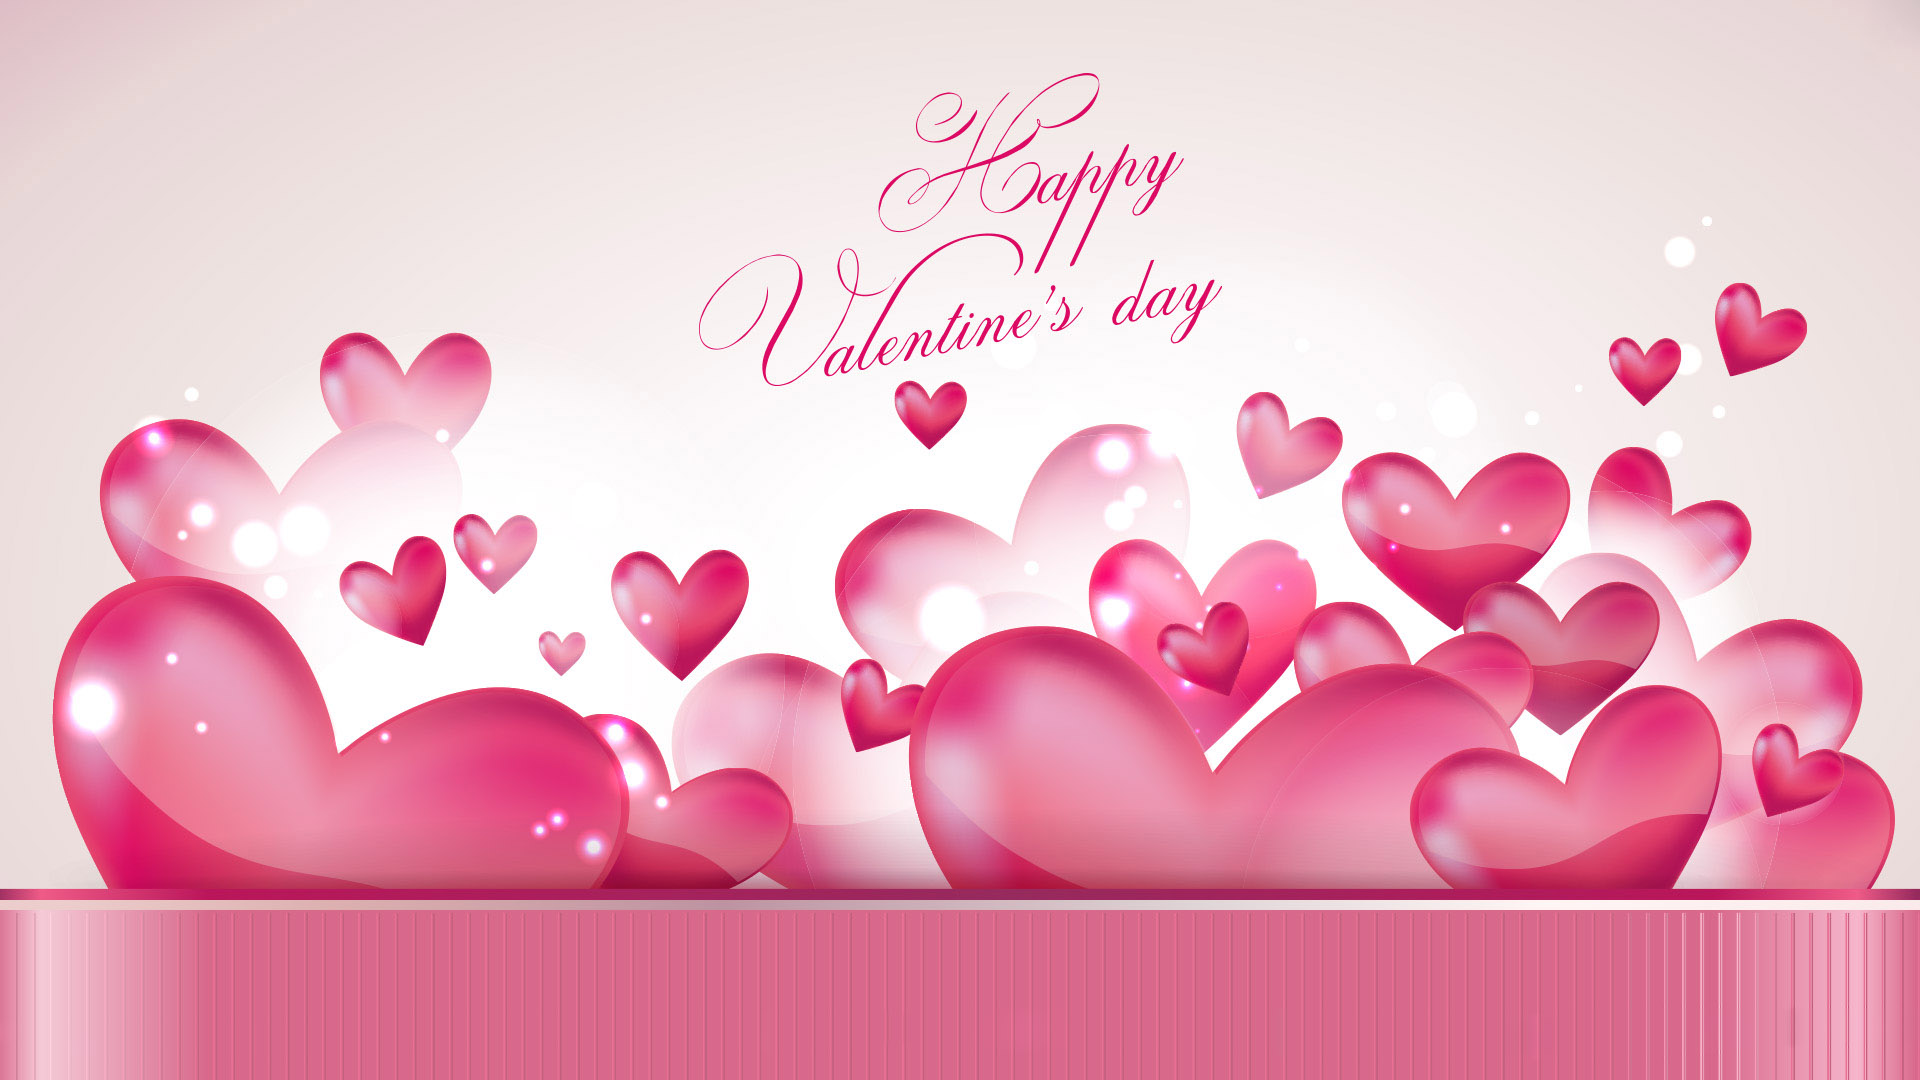 happy valentines day hearts wallpaper image hd